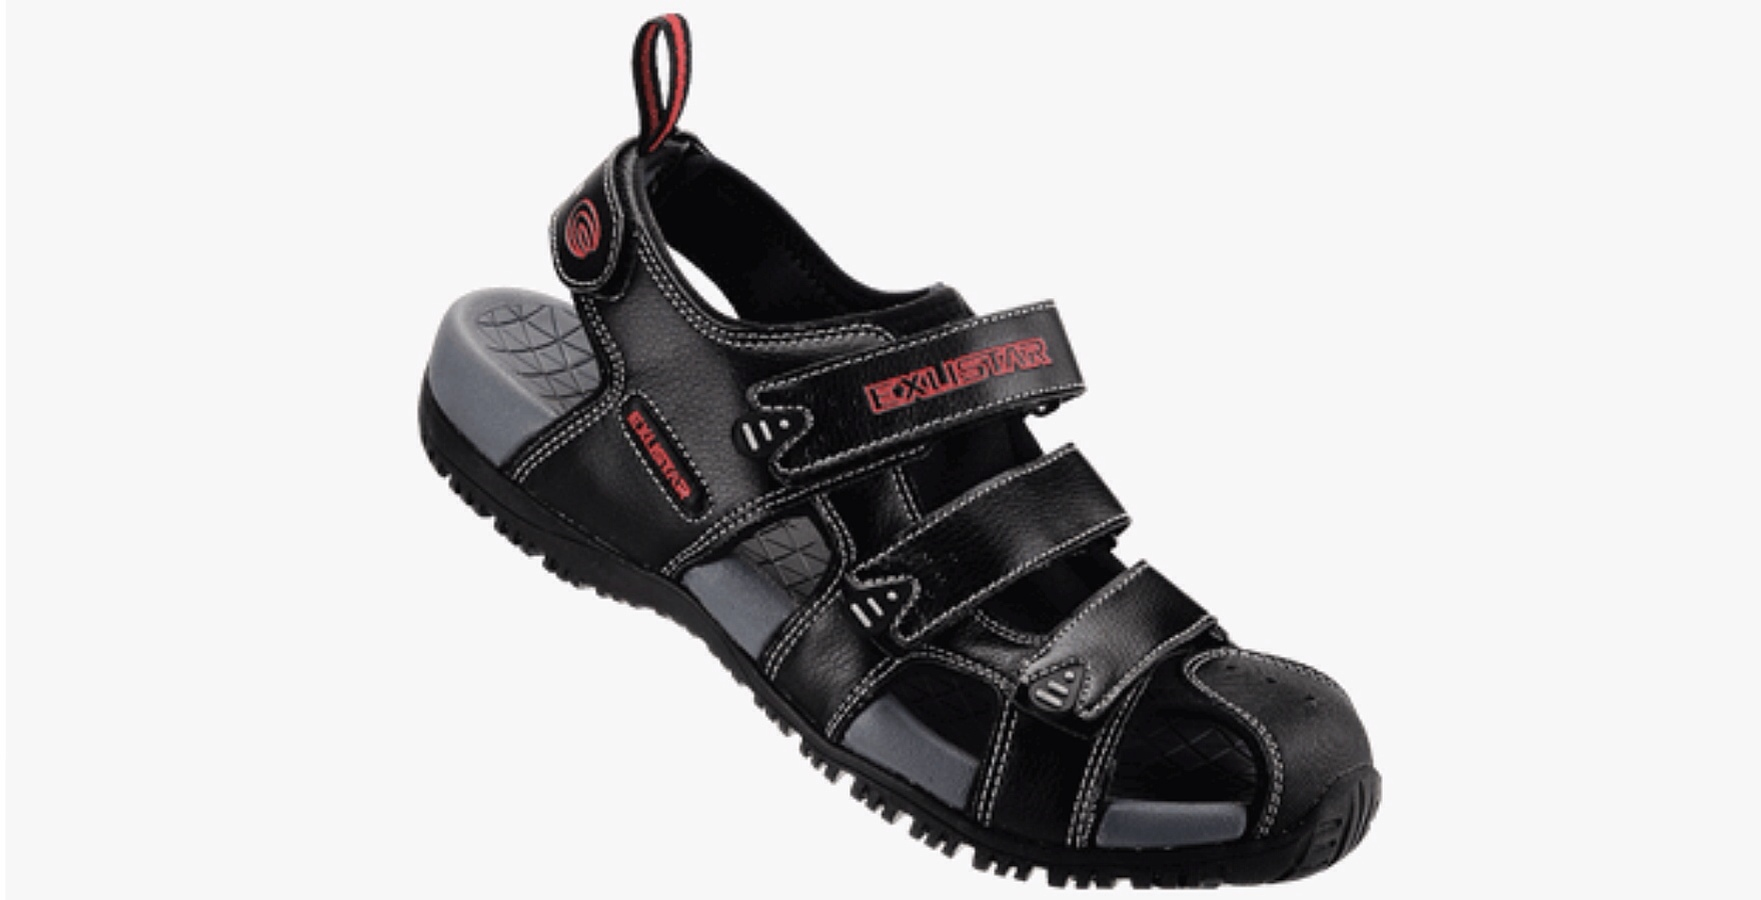 eaceca96d012 Cycling SPD Sandals  The Most Versatile Touring Shoes - CyclingAbout.com